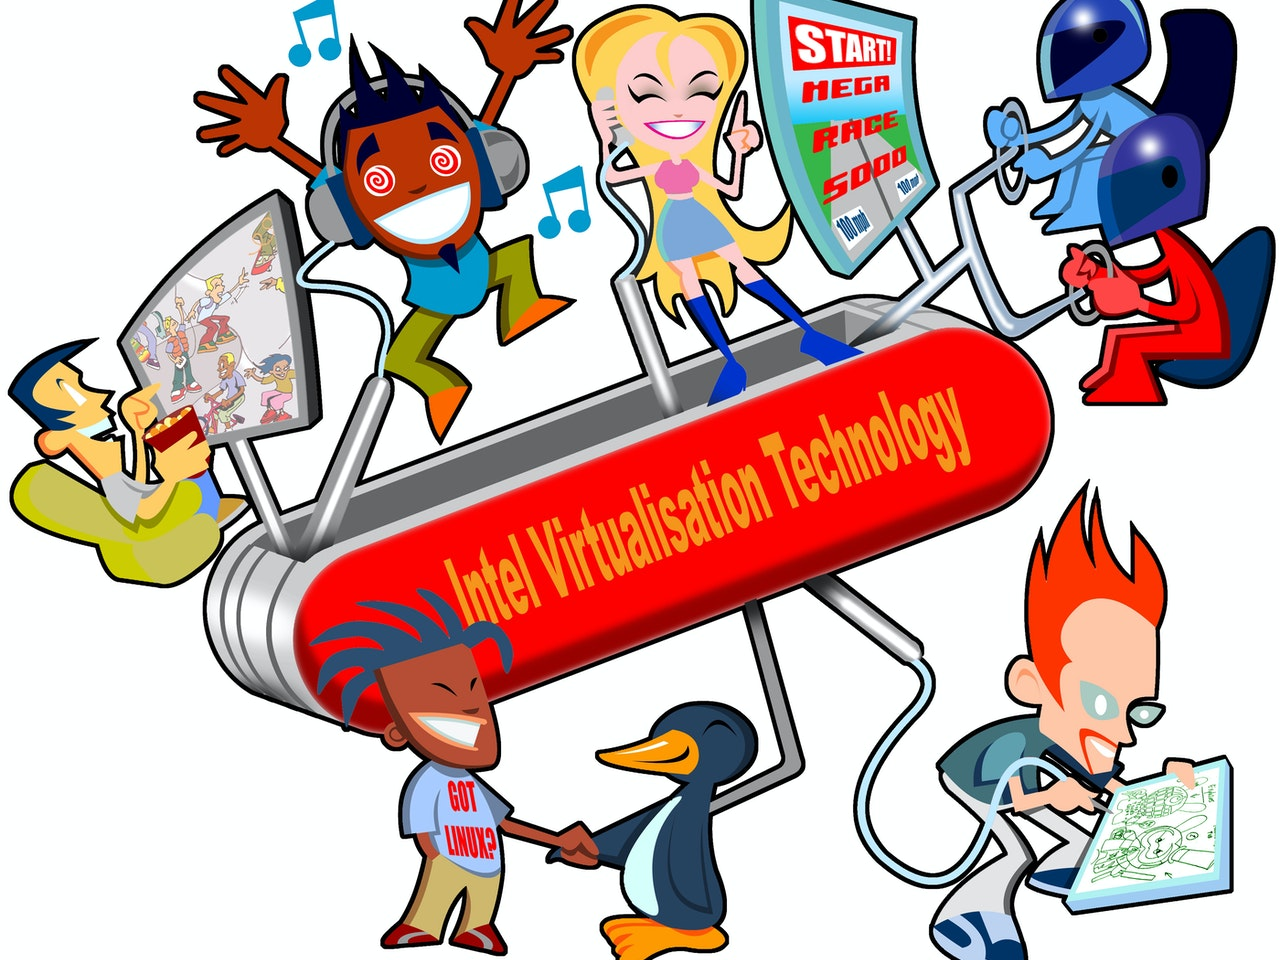 funny happy humorous comical colourful graphic cartoon anime swiss army computer knife gaming music dancing raving virtual reality internet online browsing streaming social network profile  facebook